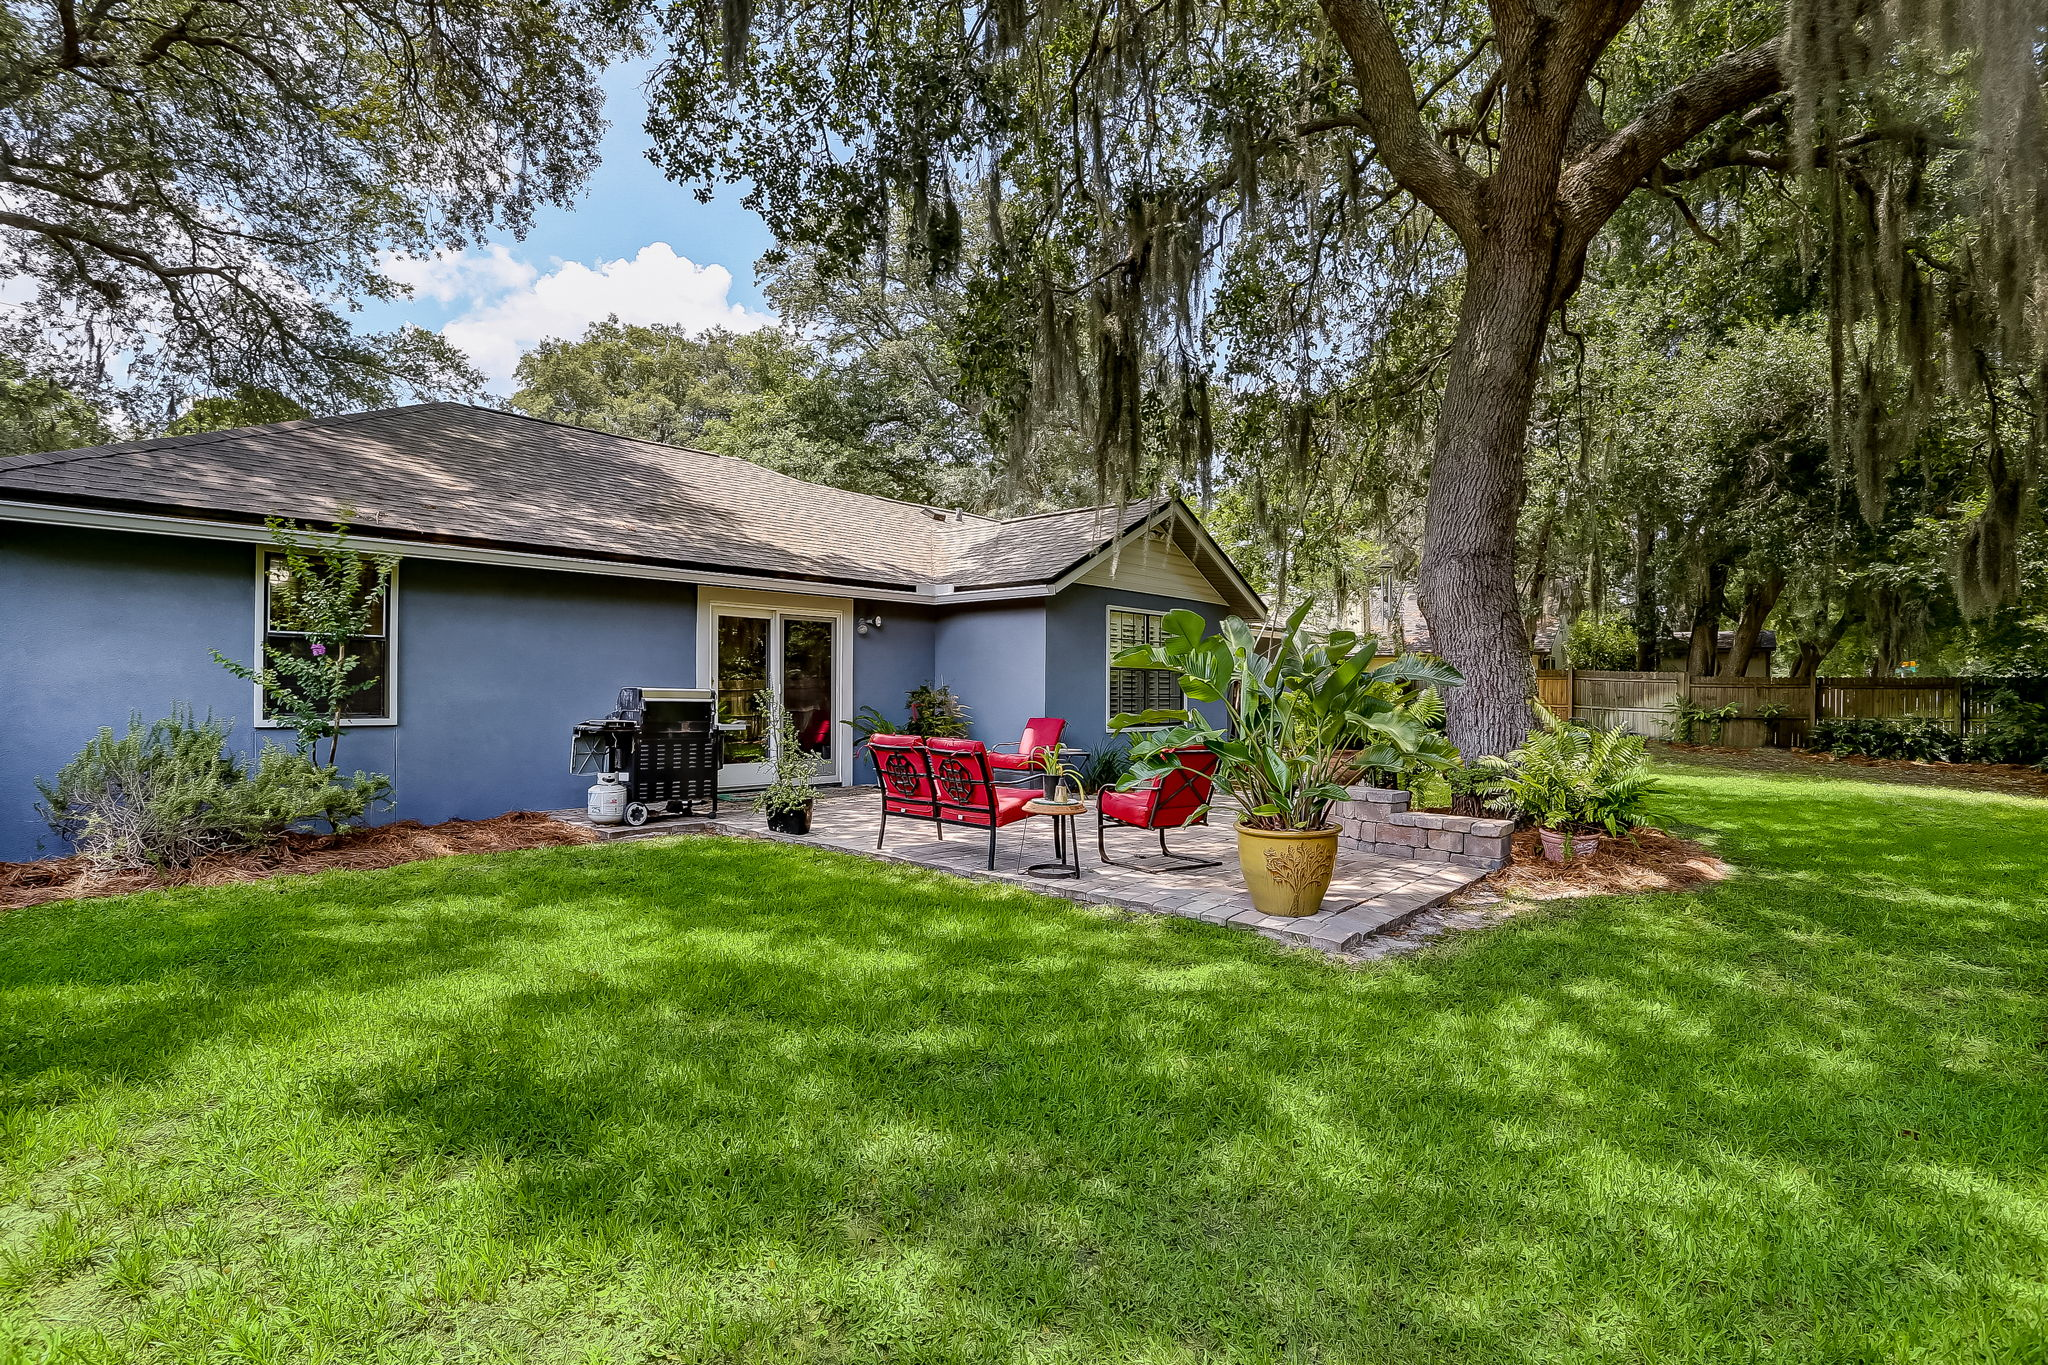 Pavered open patio shaded by majestic live oak